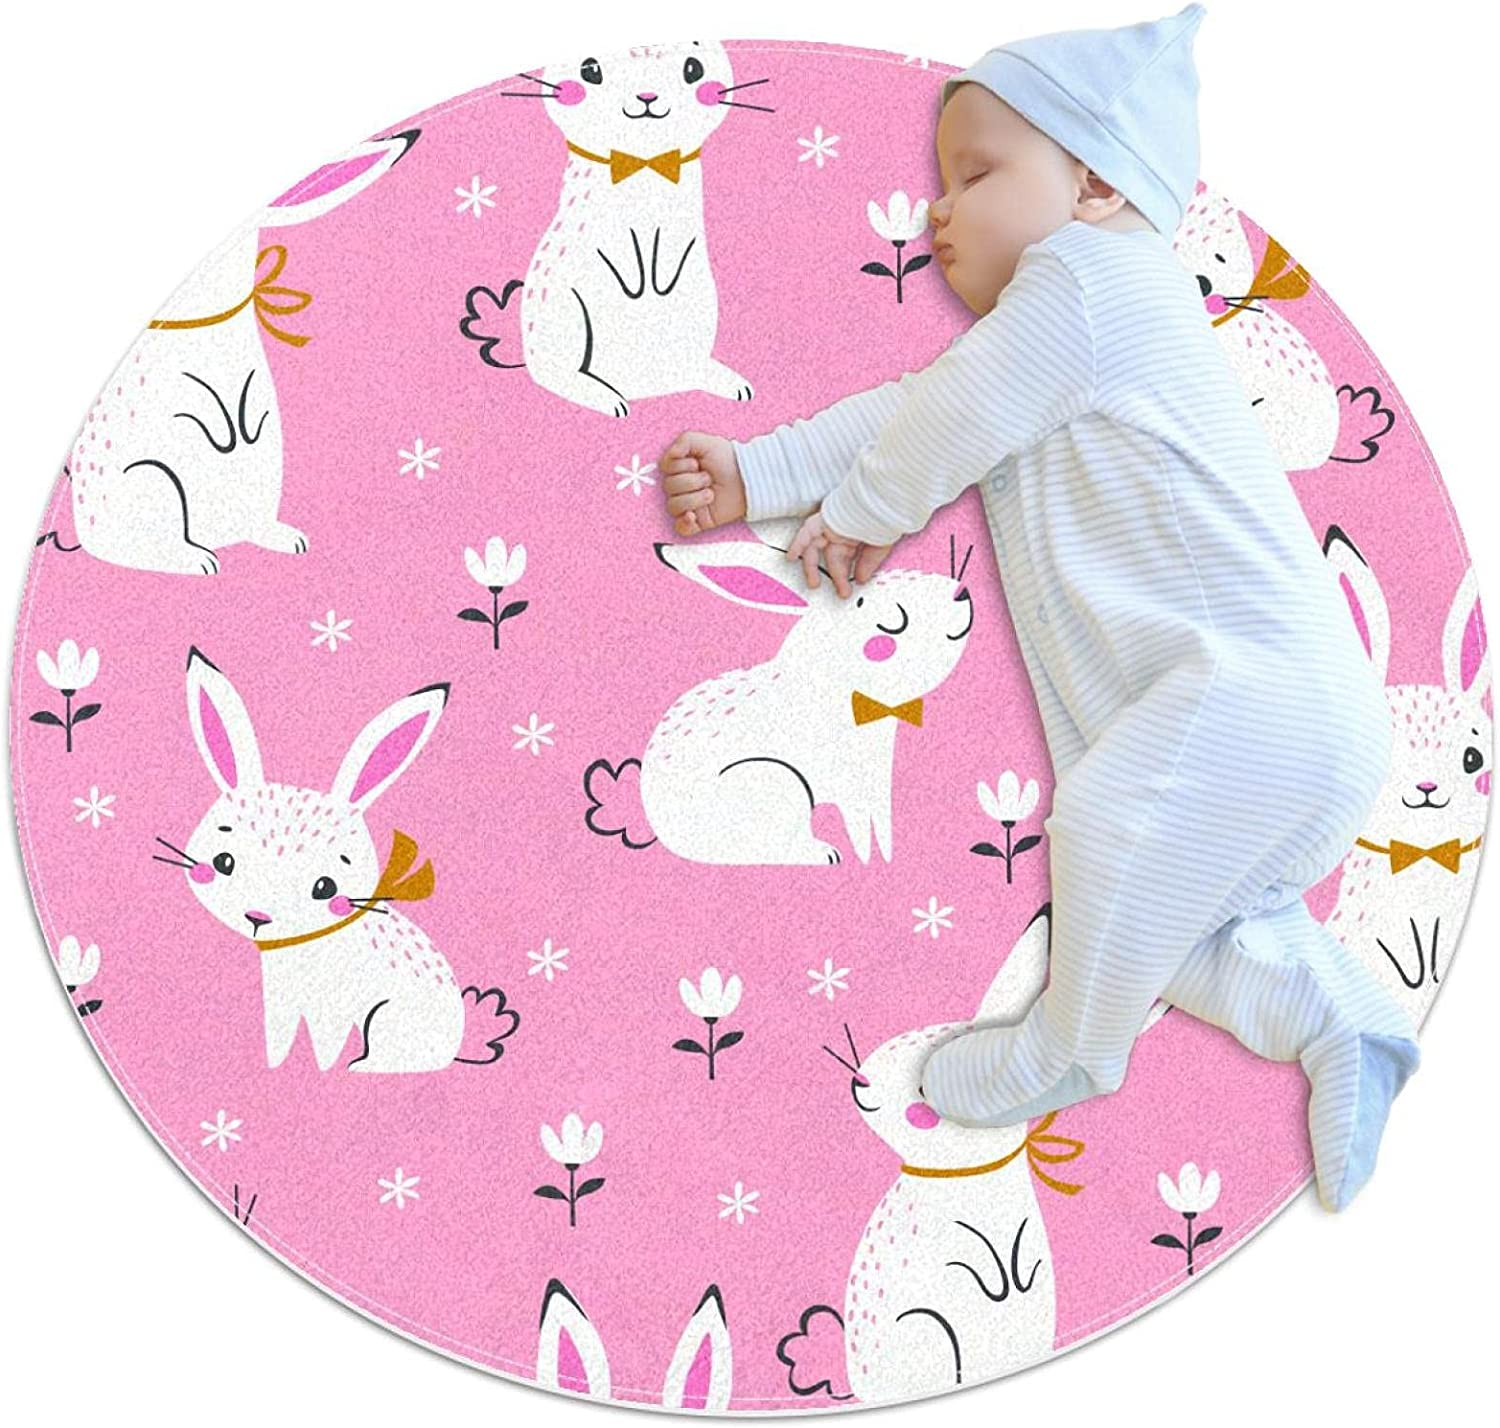 Seamless Pattern 5 popular of Cute White Mat Bunnies Kids Play Polyester Max 59% OFF